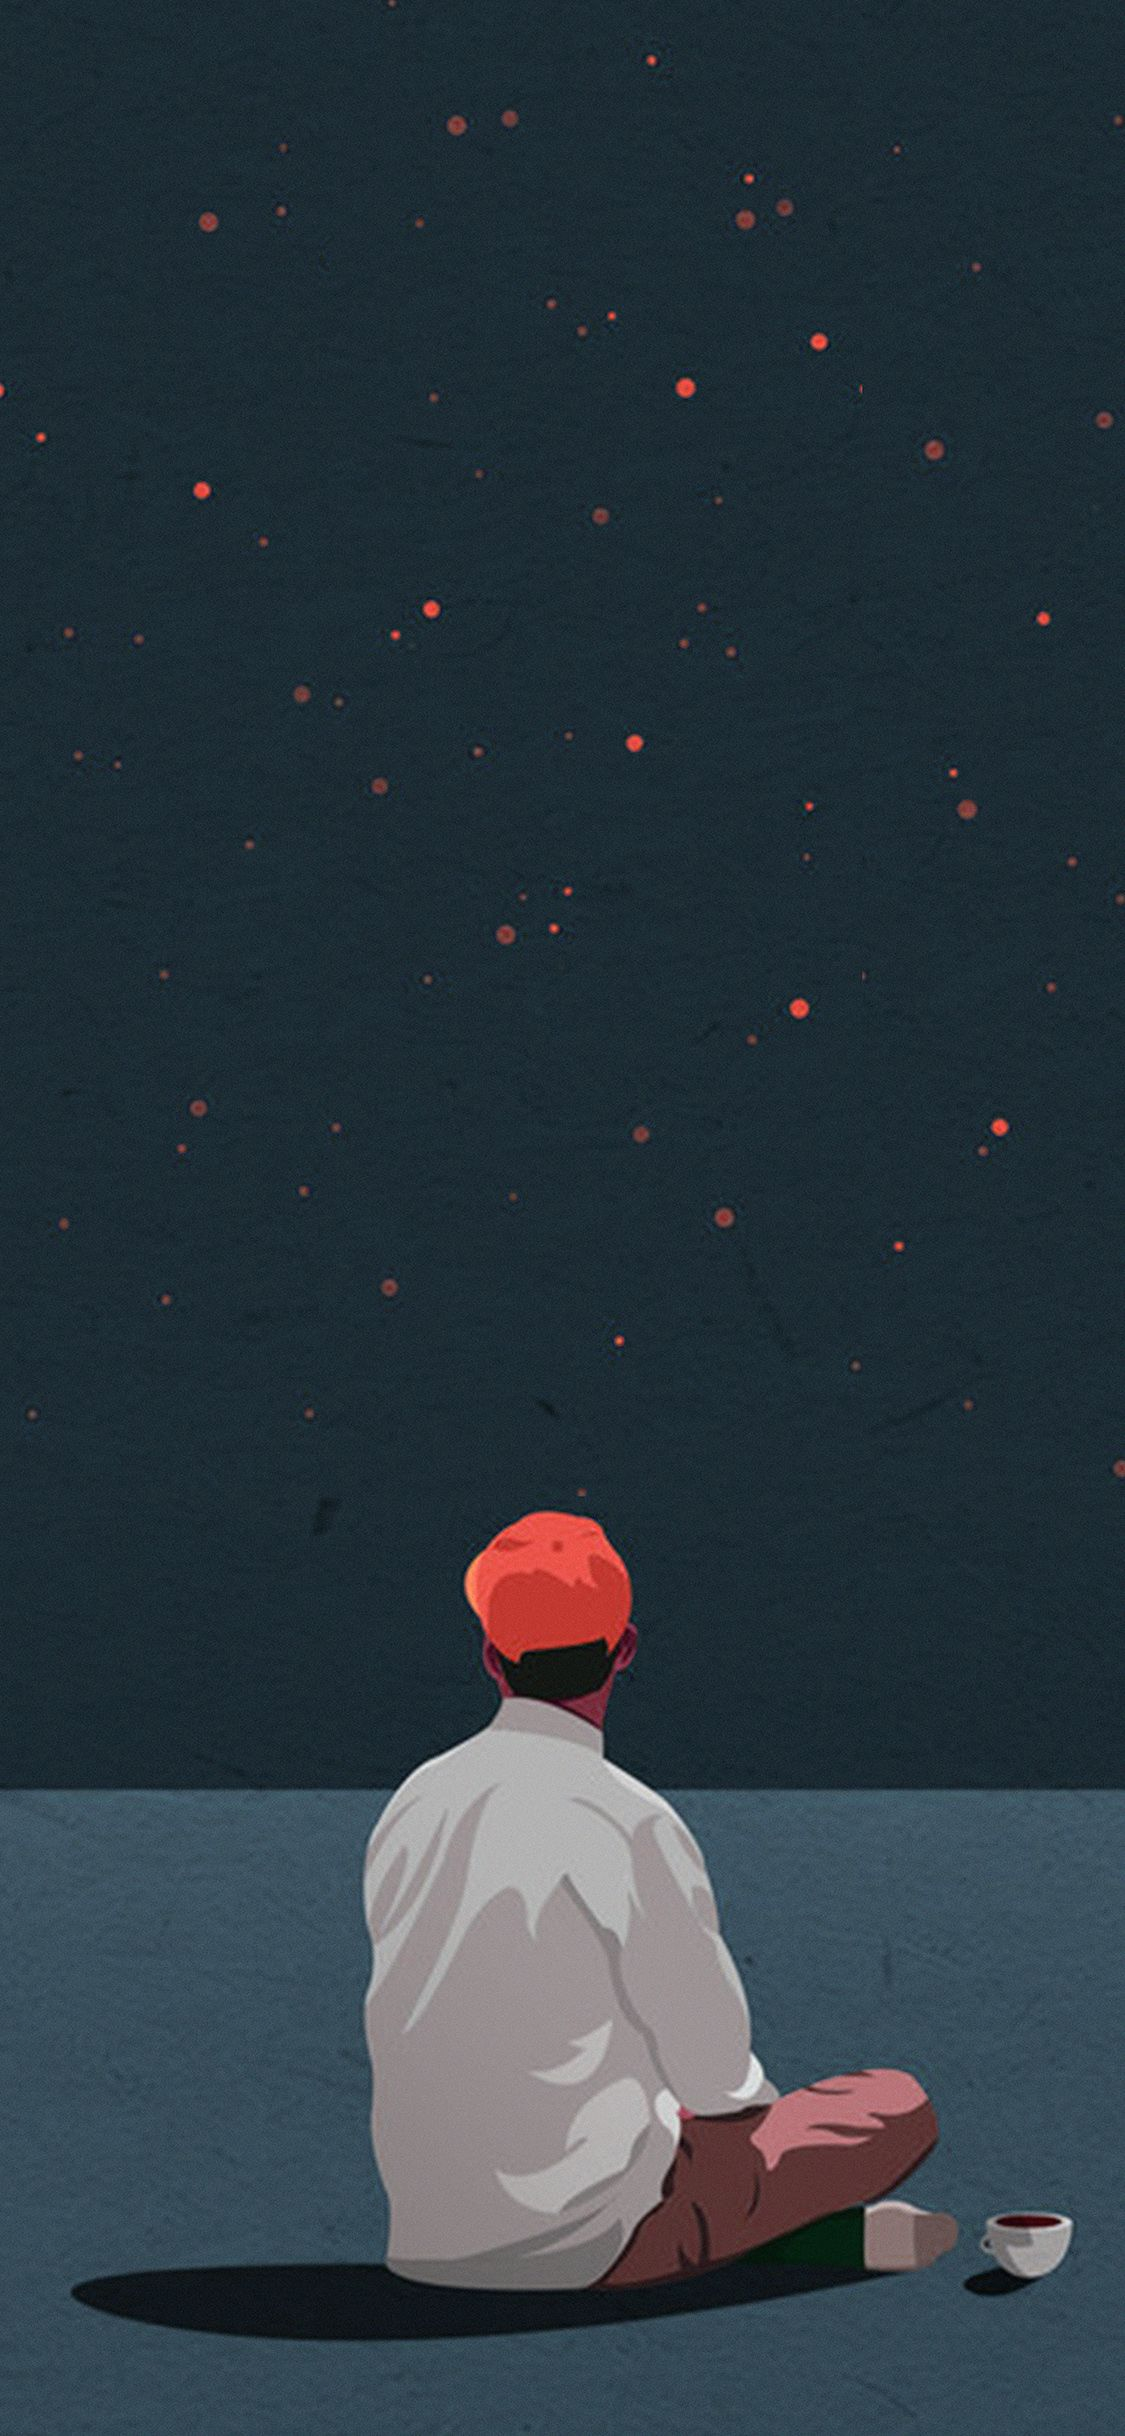 Ax68 Coffee Boy Cover Illustration Art Red Via Http Iphonexpapers Com Wallpapers For Iphone X Art Wallpaper Illustration Art Cartoon Wallpaper